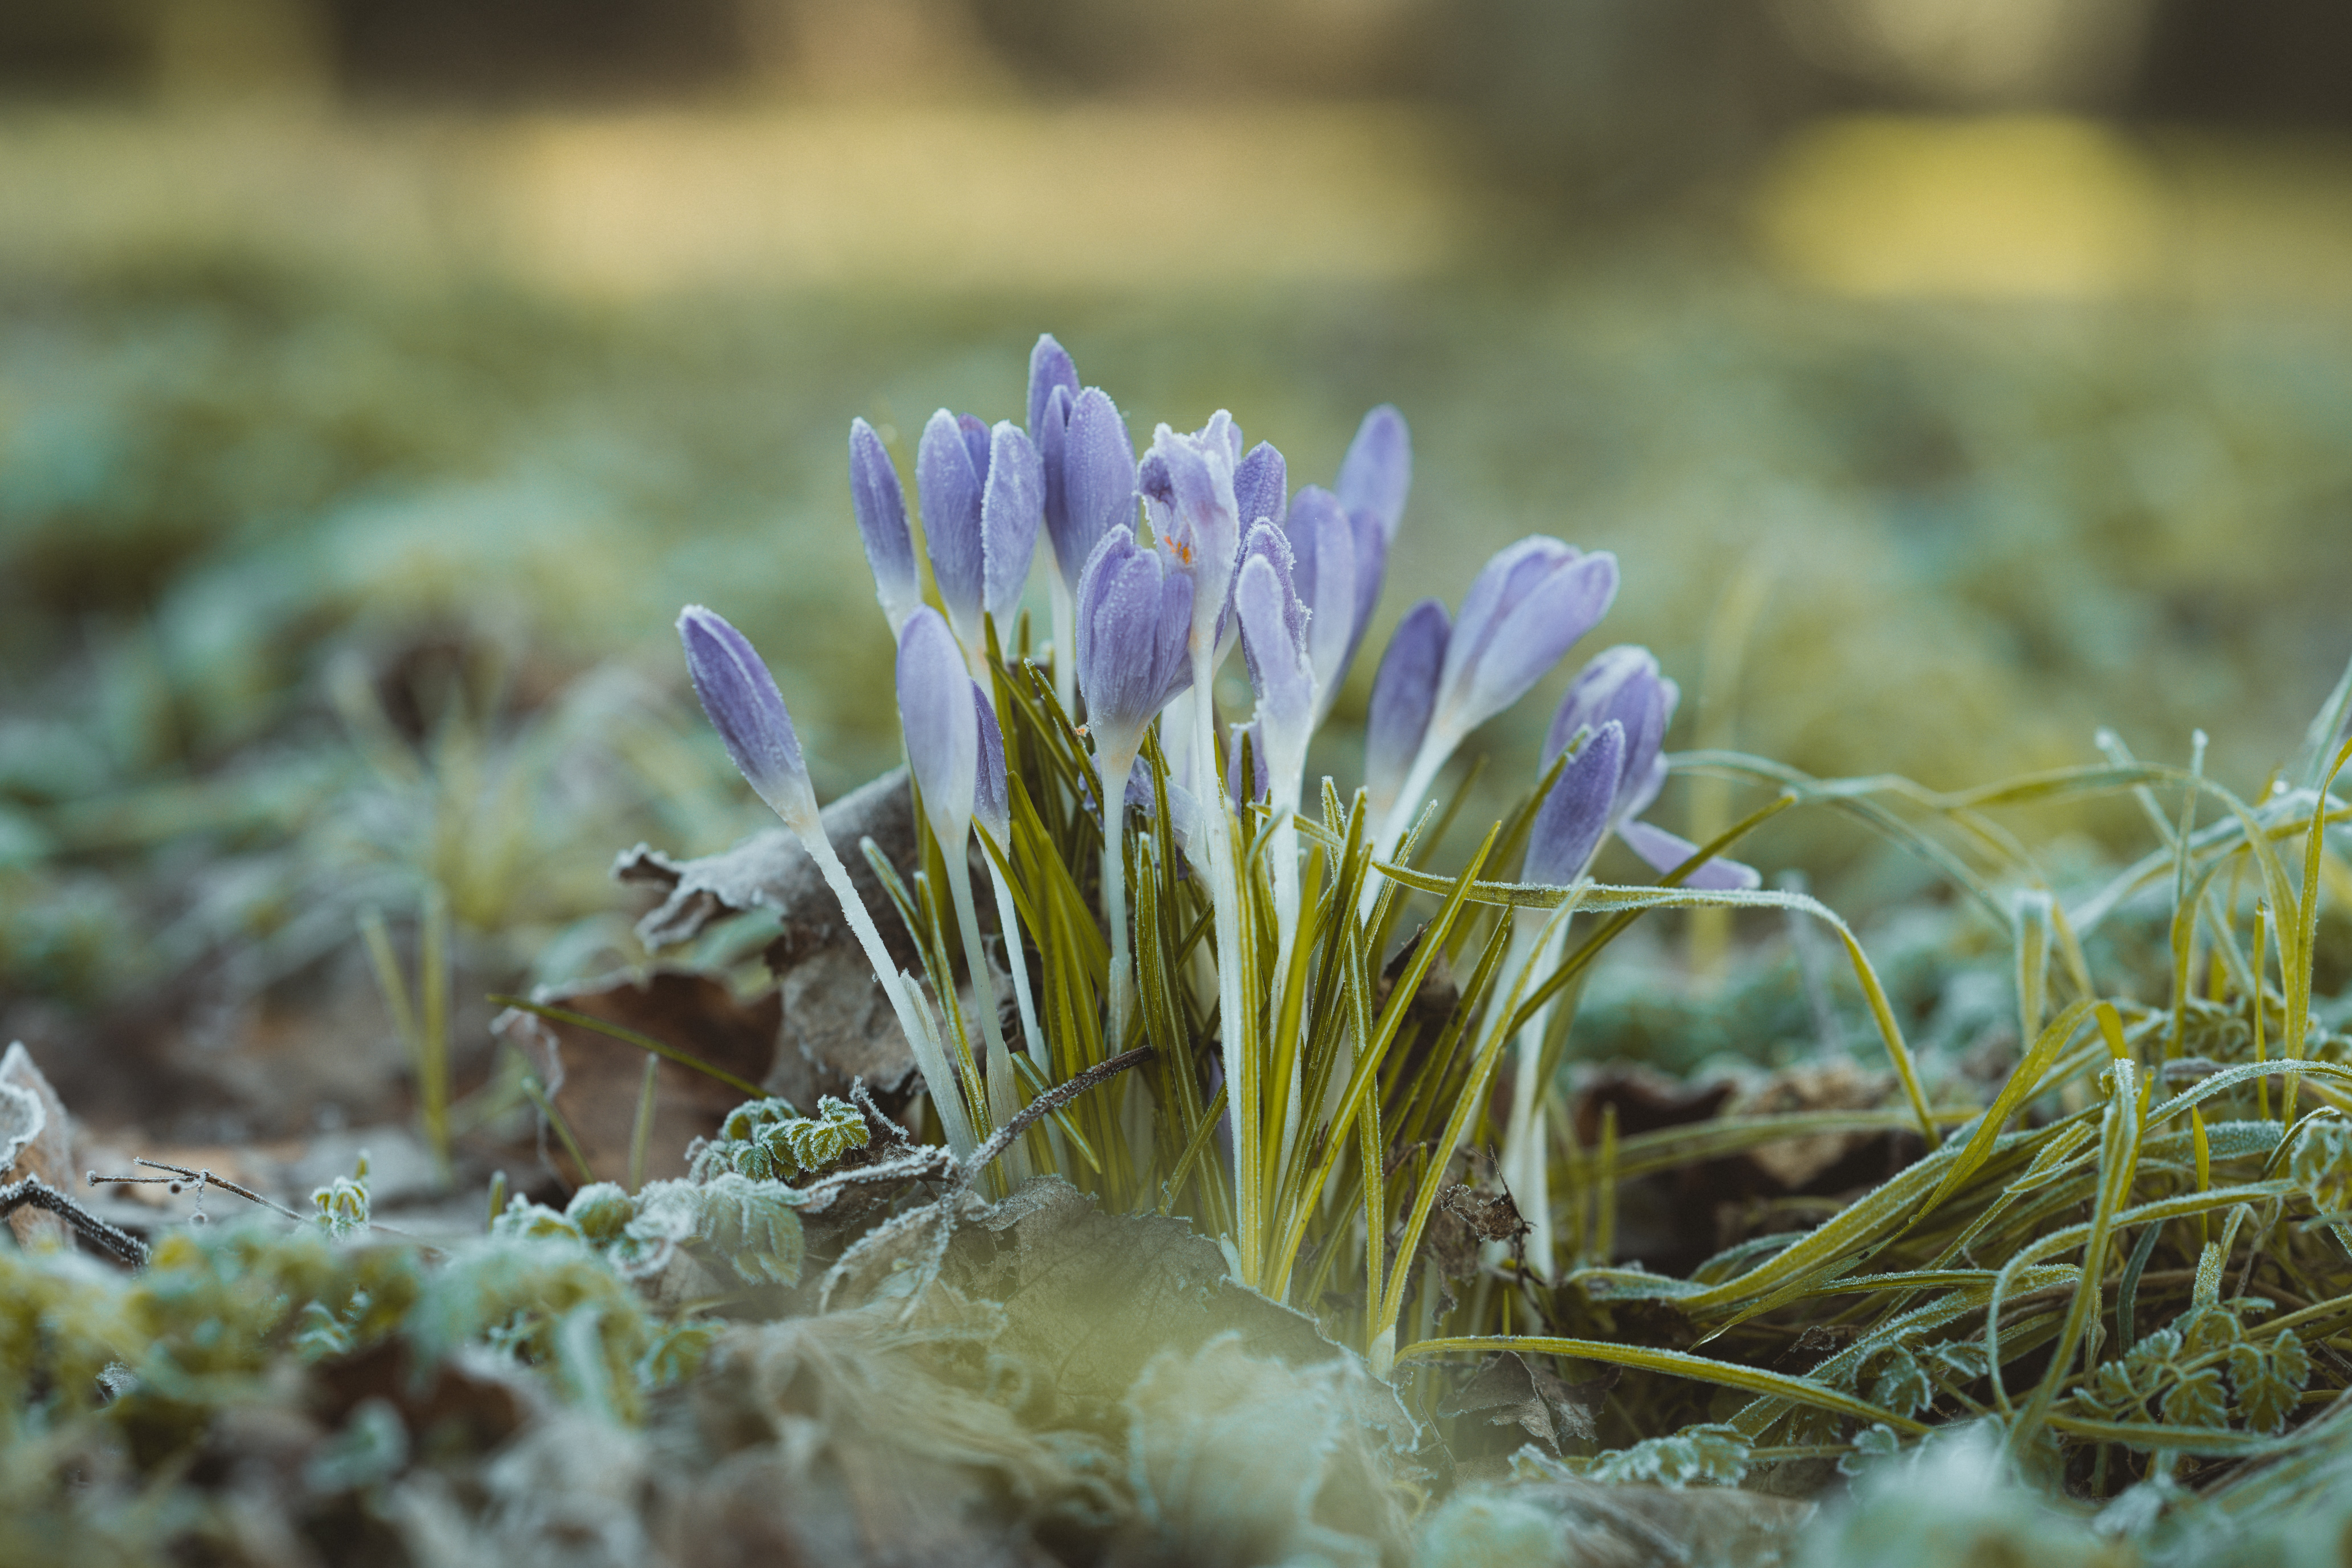 Photograph of blooming winter crocuses